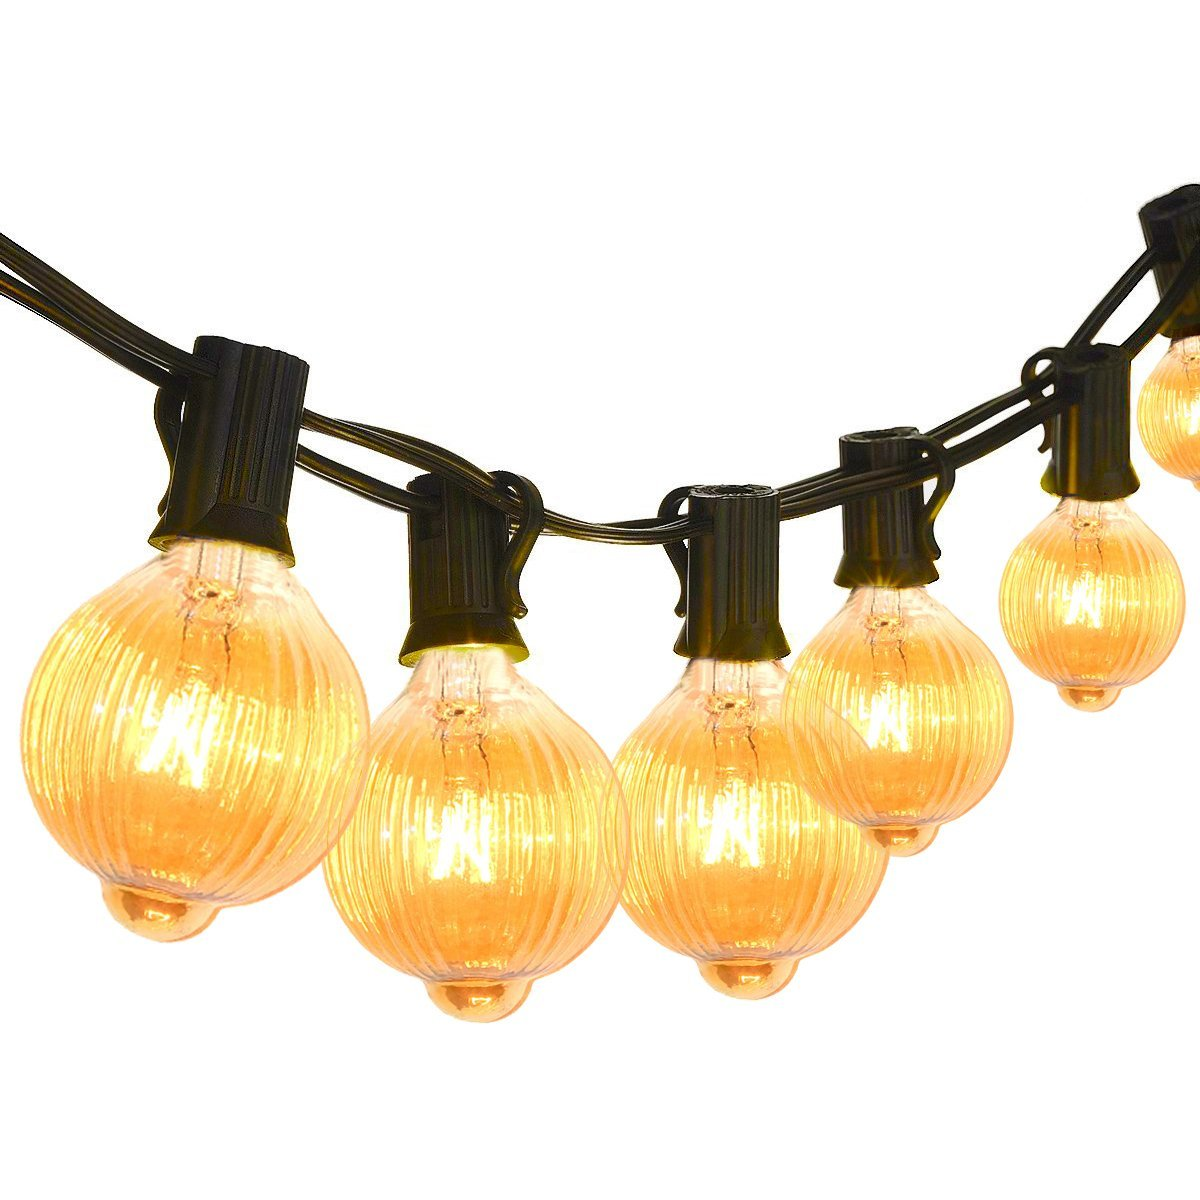 Classyke 25ft G40 Pumpkin Indoor Outdoor String Lights for Patio Garden Yard Deck Cafe Dimmable Weatherproof Commercial Grade [UL Listed]